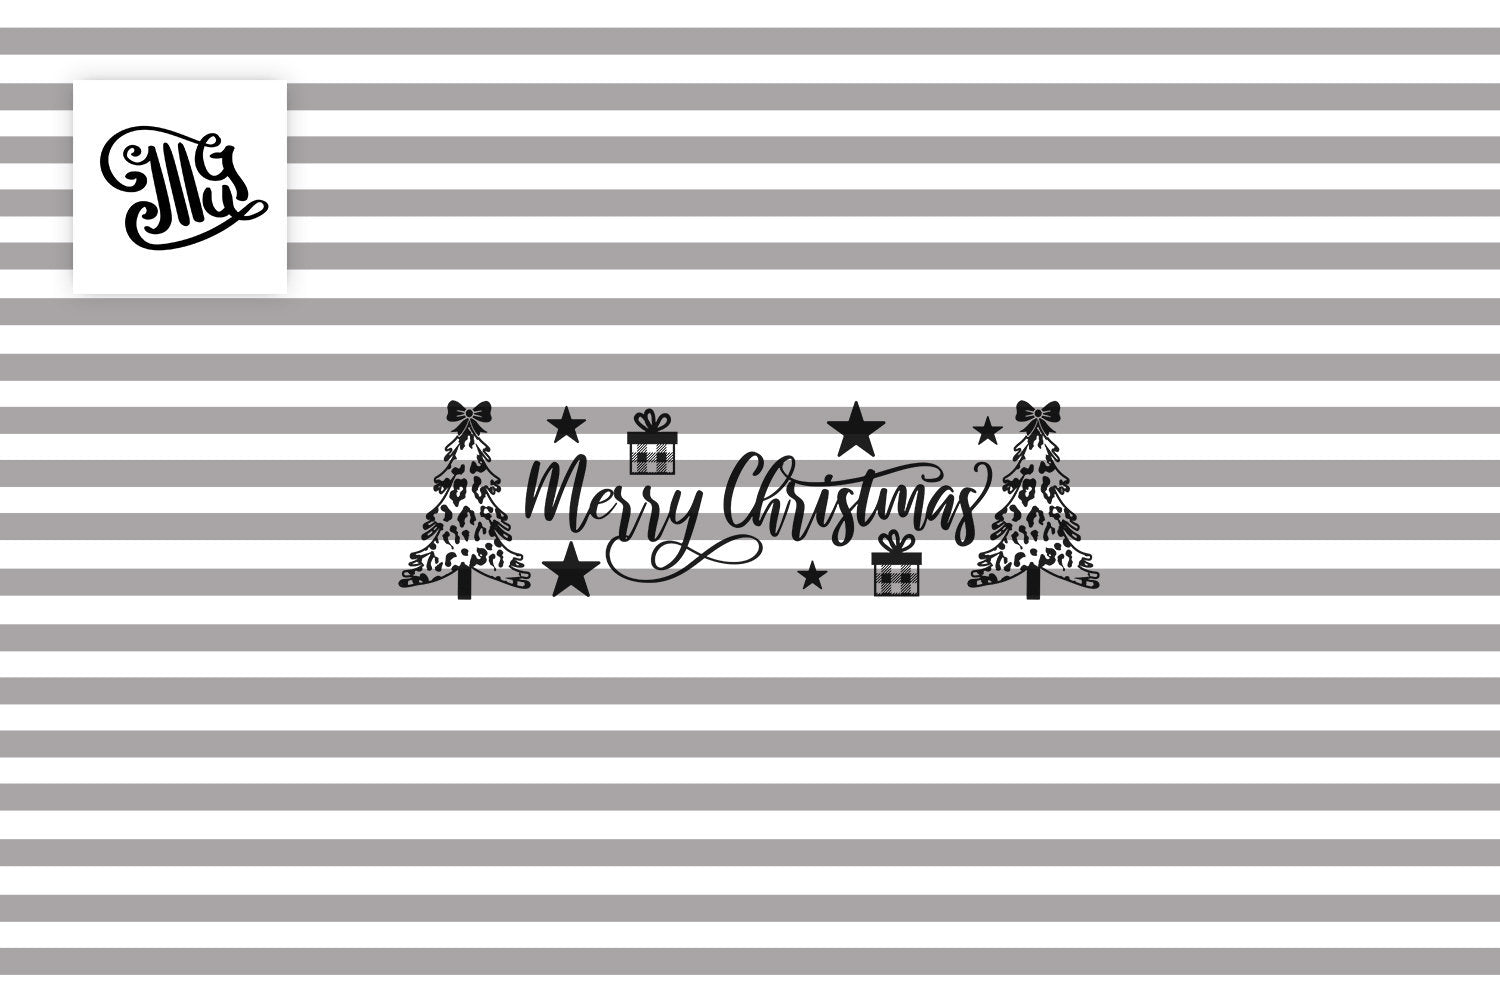 Merry Christmas Sign Svg with Leopard Print Christmas Trees-by Illustrator Guru